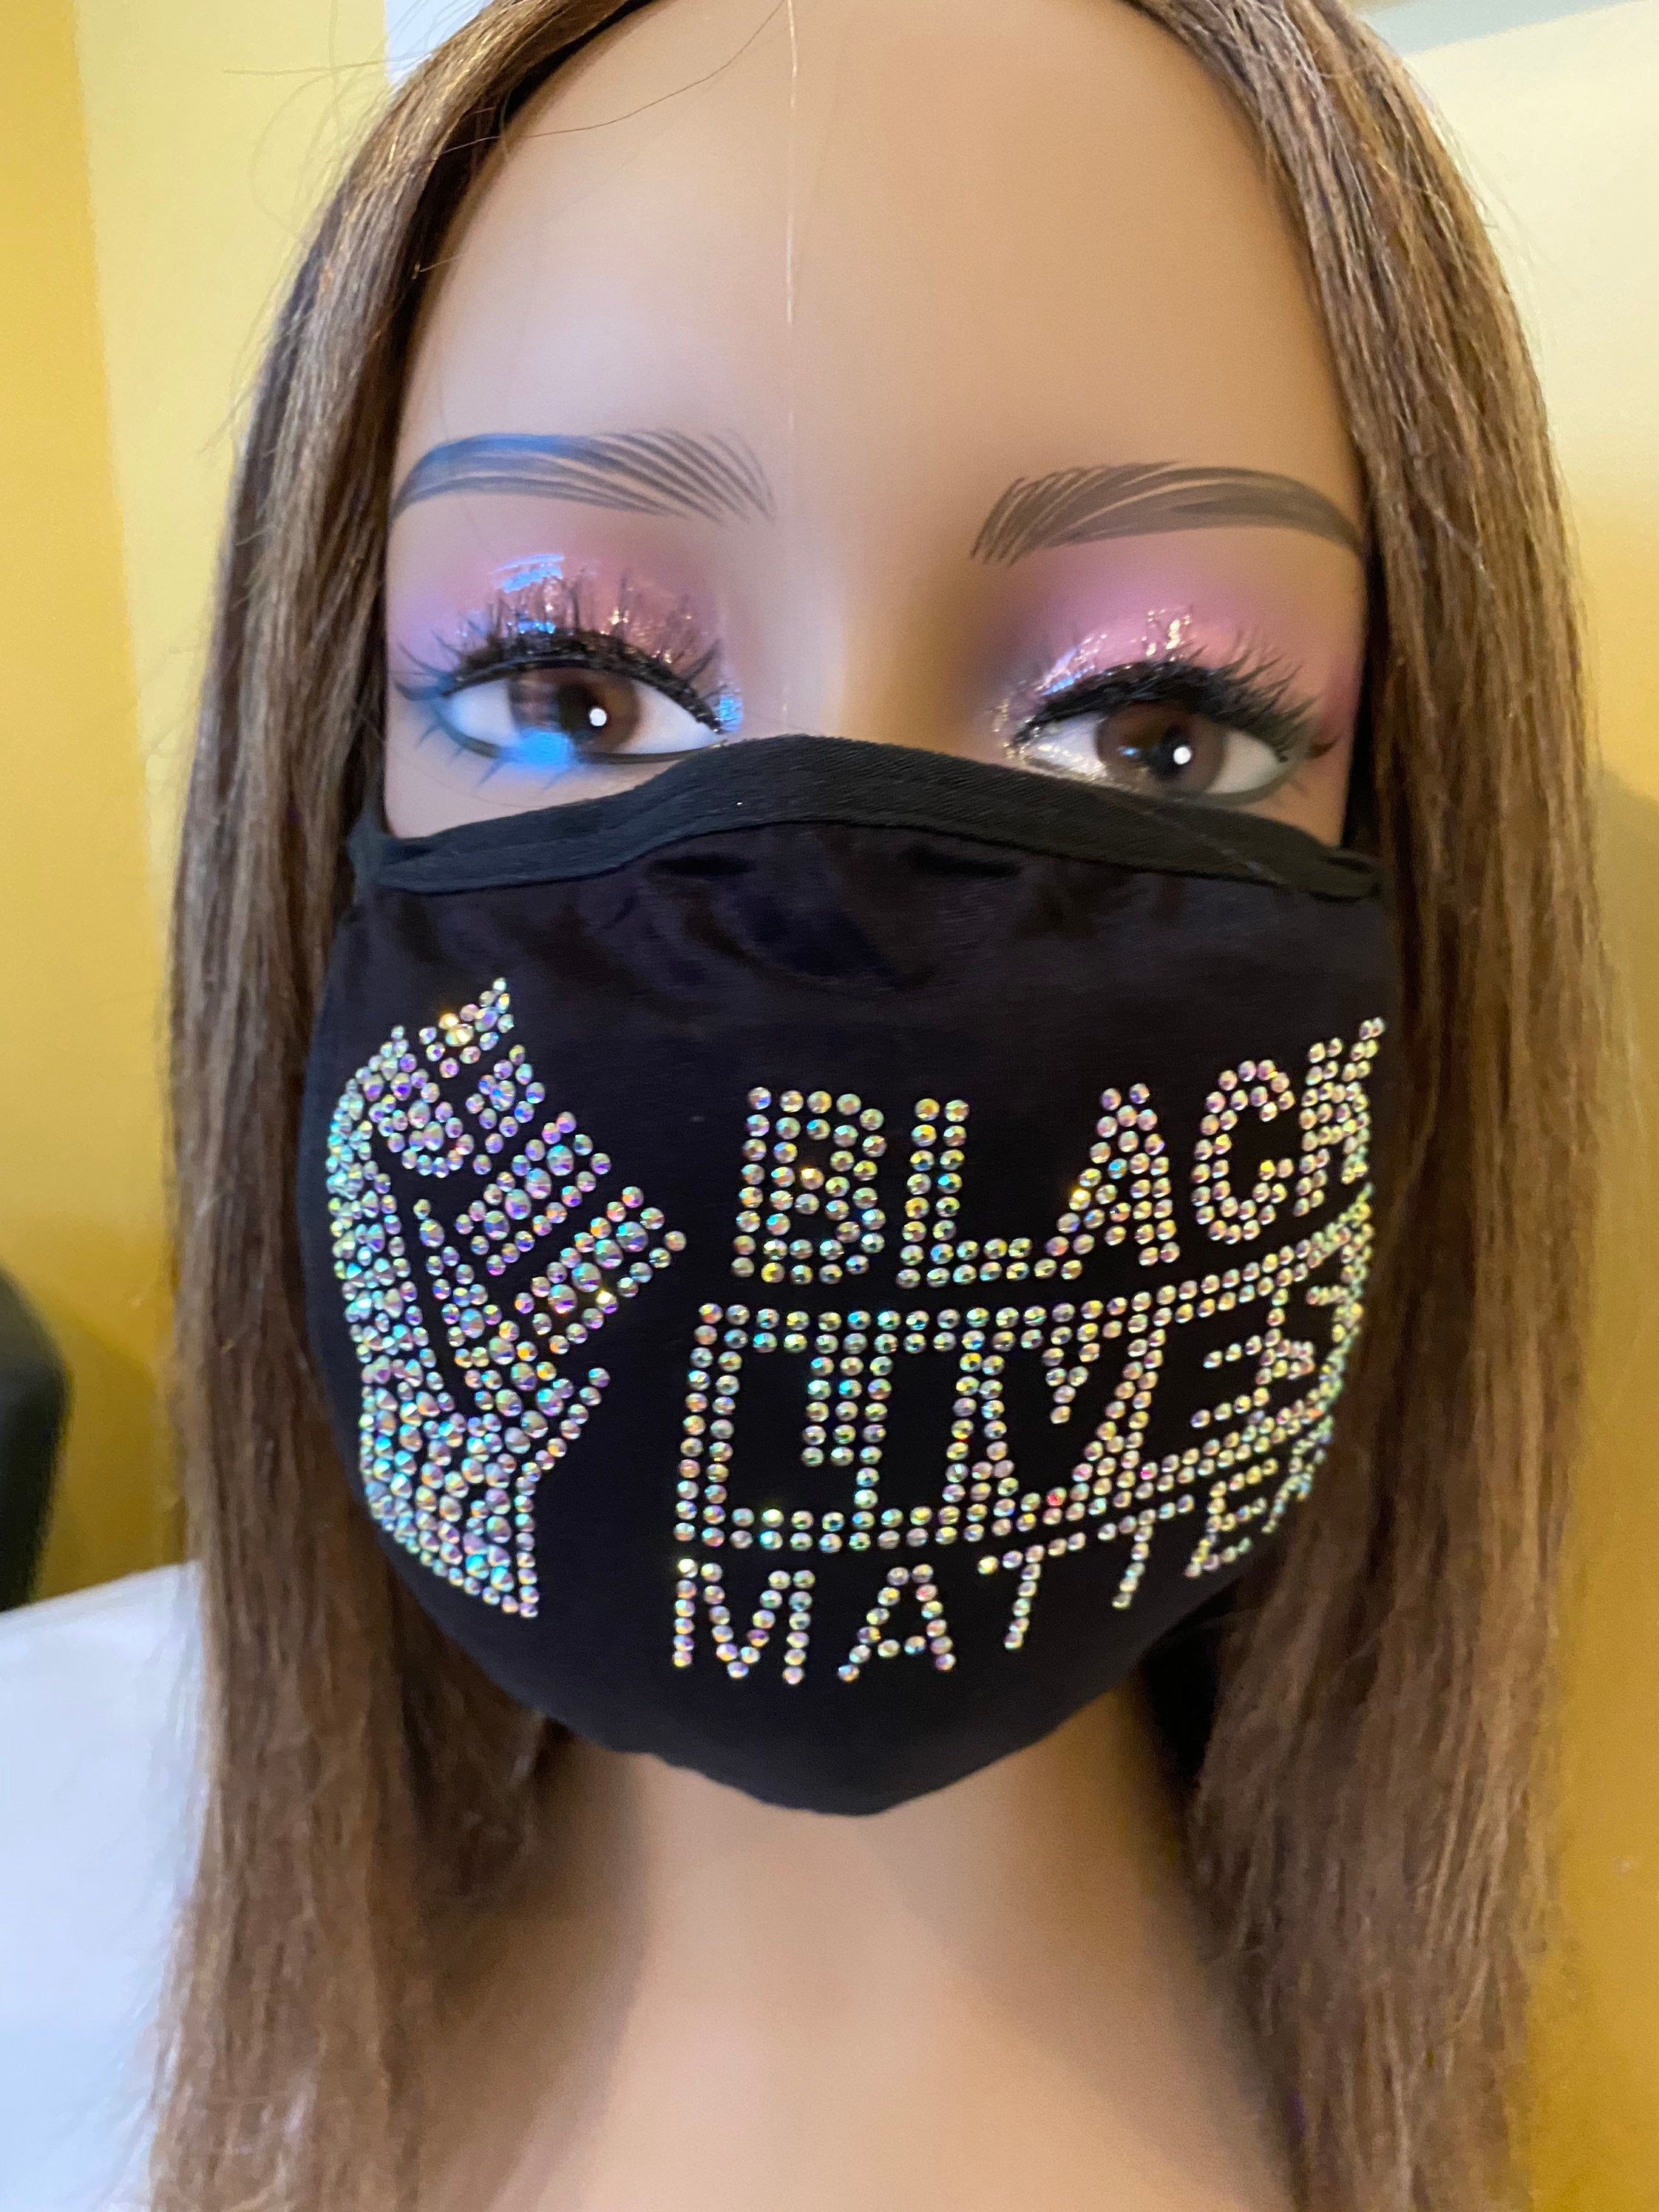 Black Lives Matter Mask with Fist AB Color Crystals | Simply For Us